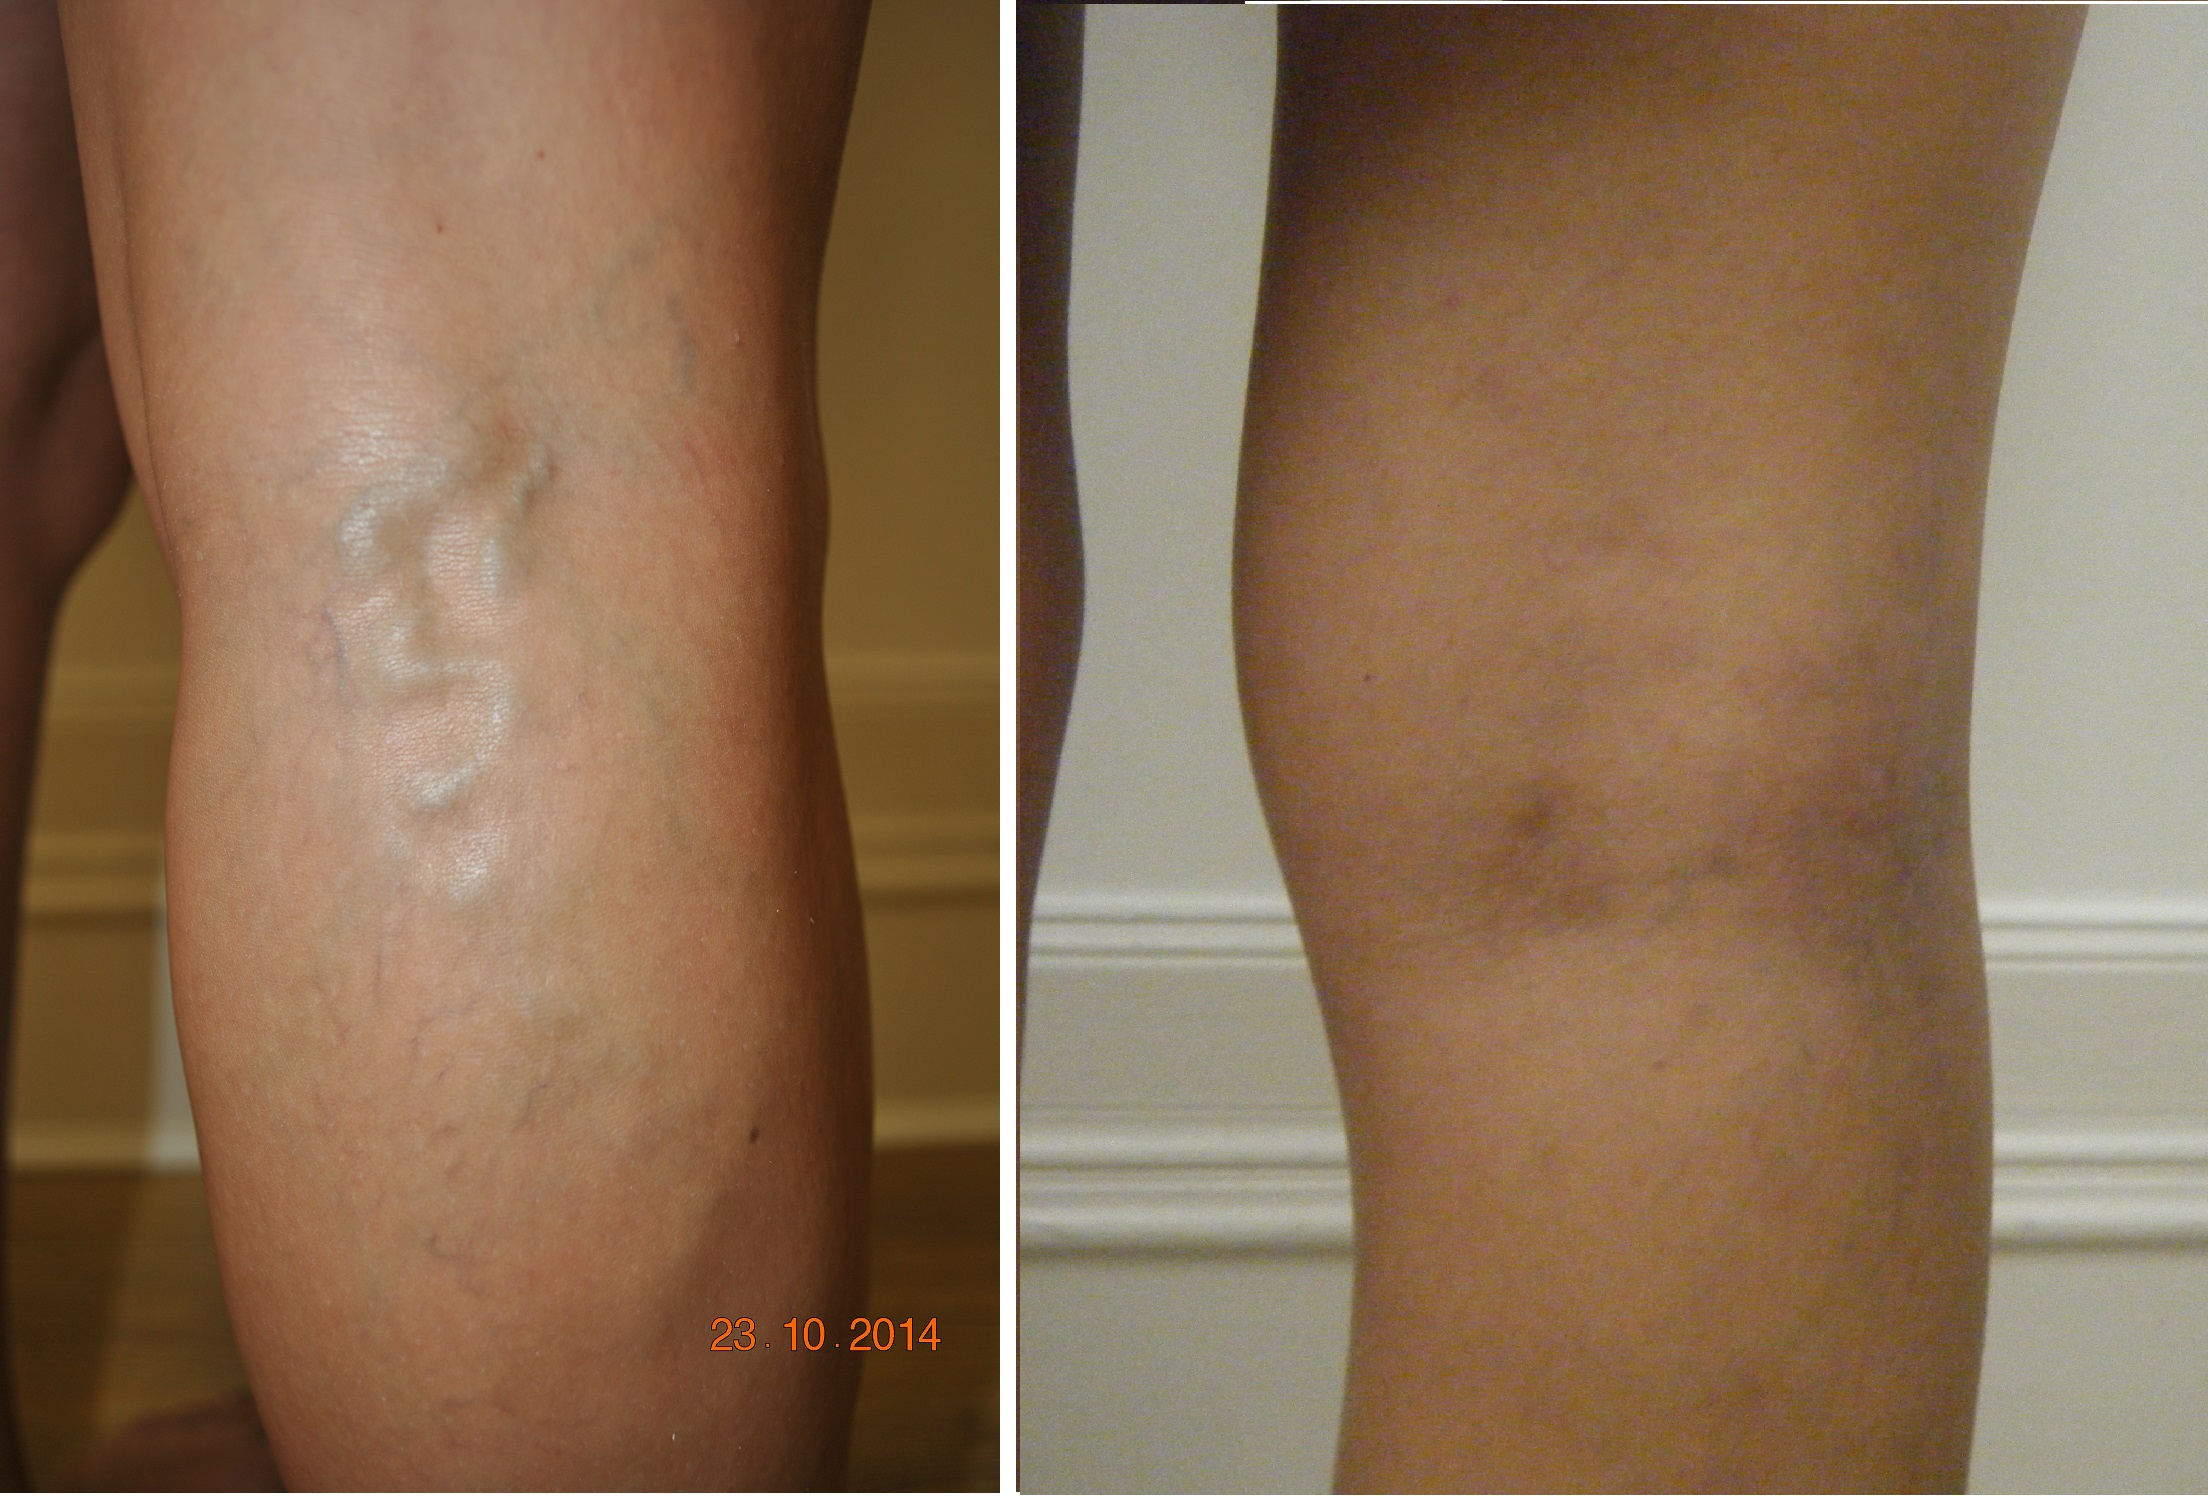 Before and After EVLA Varicose Vein treatment results - The Private Clinic Manchester